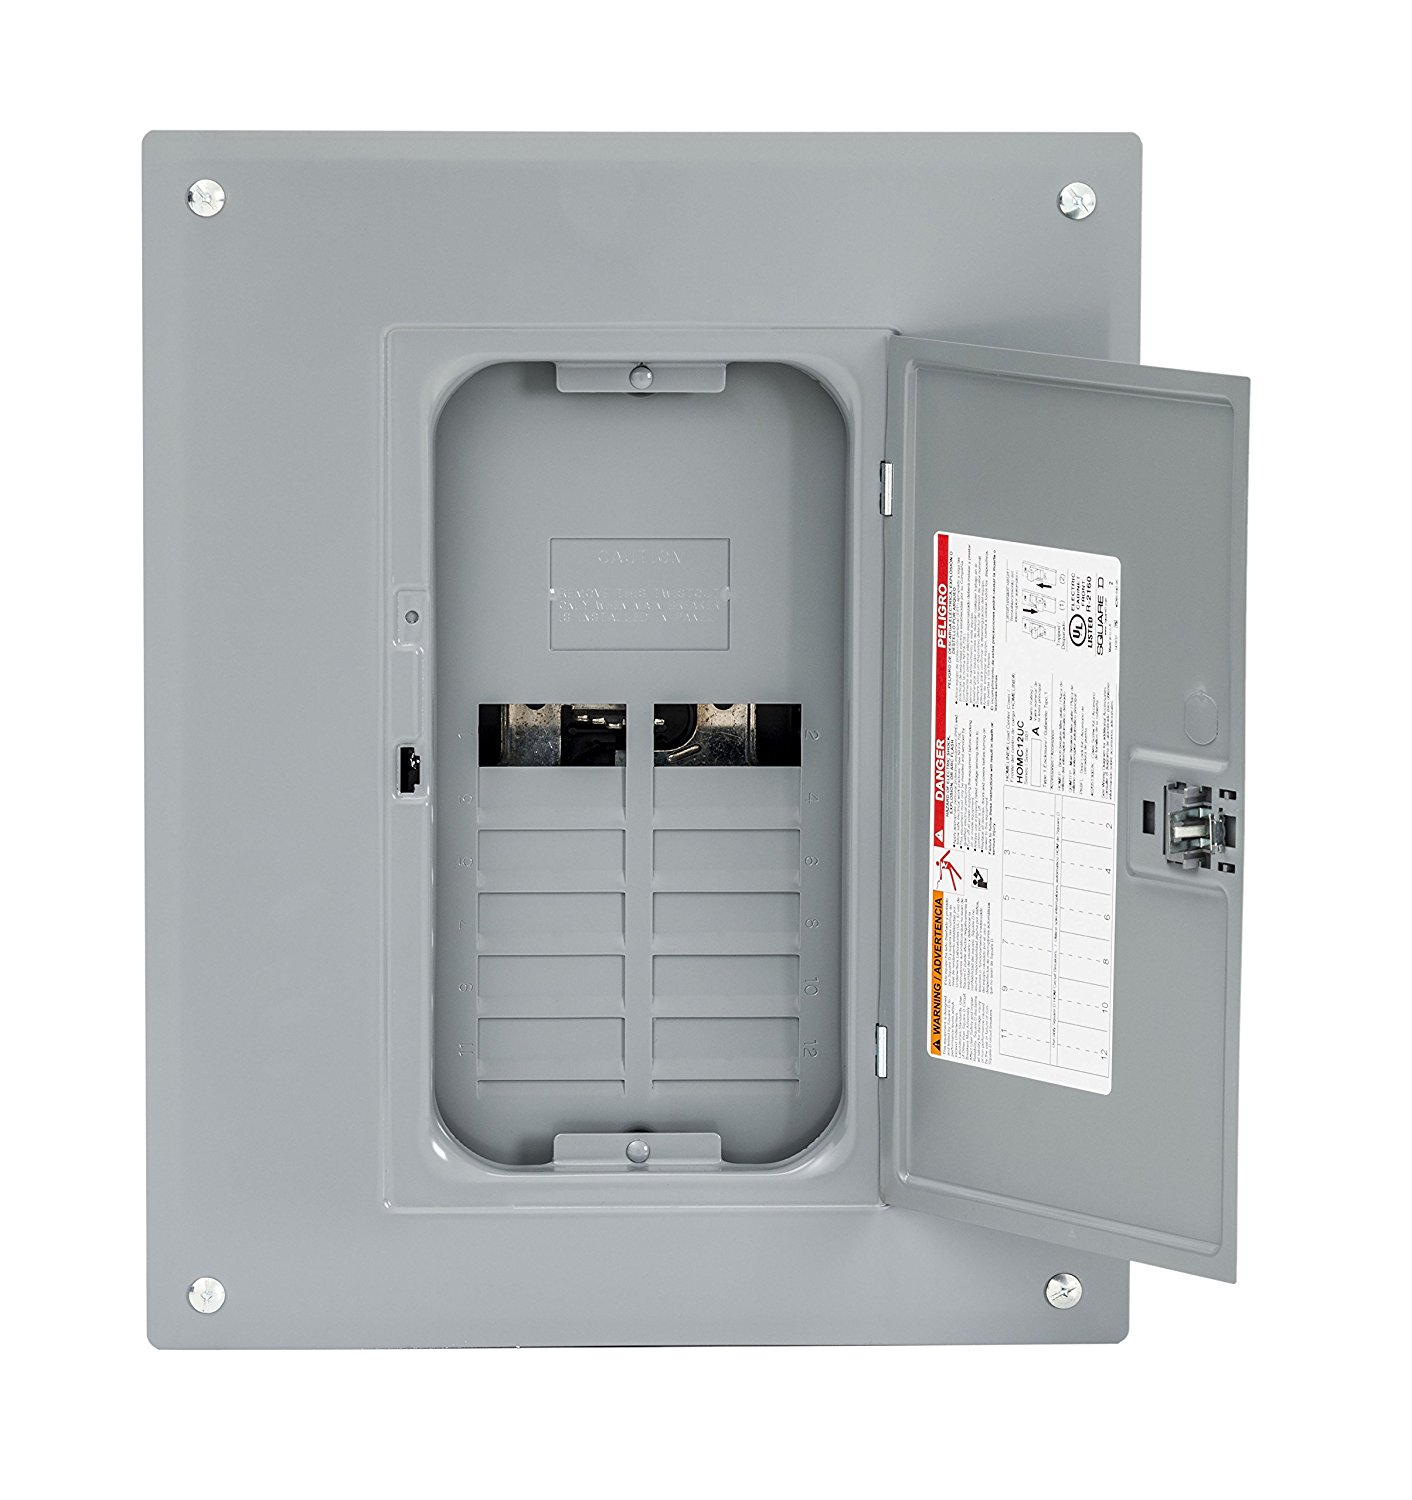 Indoor Main Lugs Load Center With Cover Plug On Neutral Ready Includes A Fully Distributed By Square D Schneider Electric Com